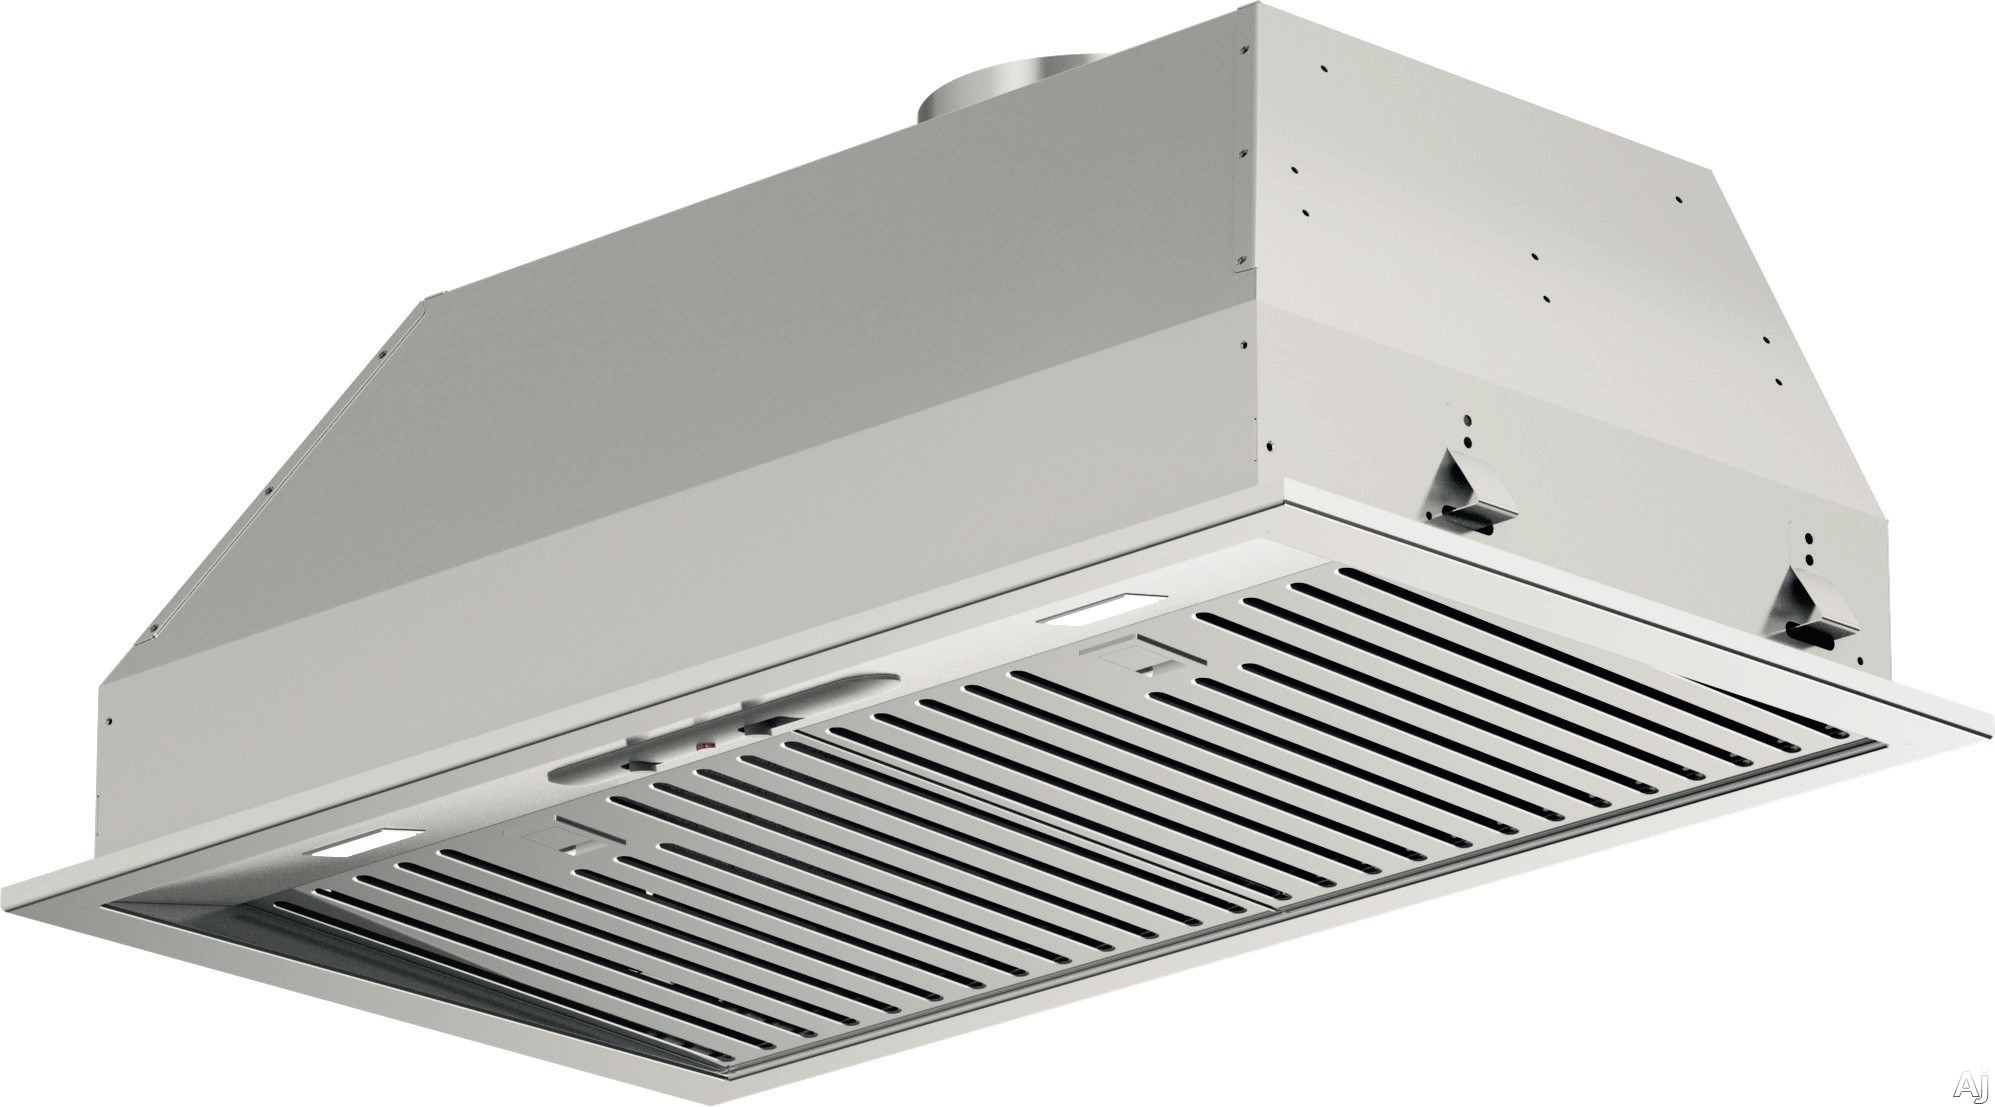 Fulgor Milano F4BP28S1 28 Inch Insert with 600 CFM Internal Blower Stainless Steel Baffle Filters Mechanical Controls 4 Speed Blower Fan LED Lighting and Recirculating Options